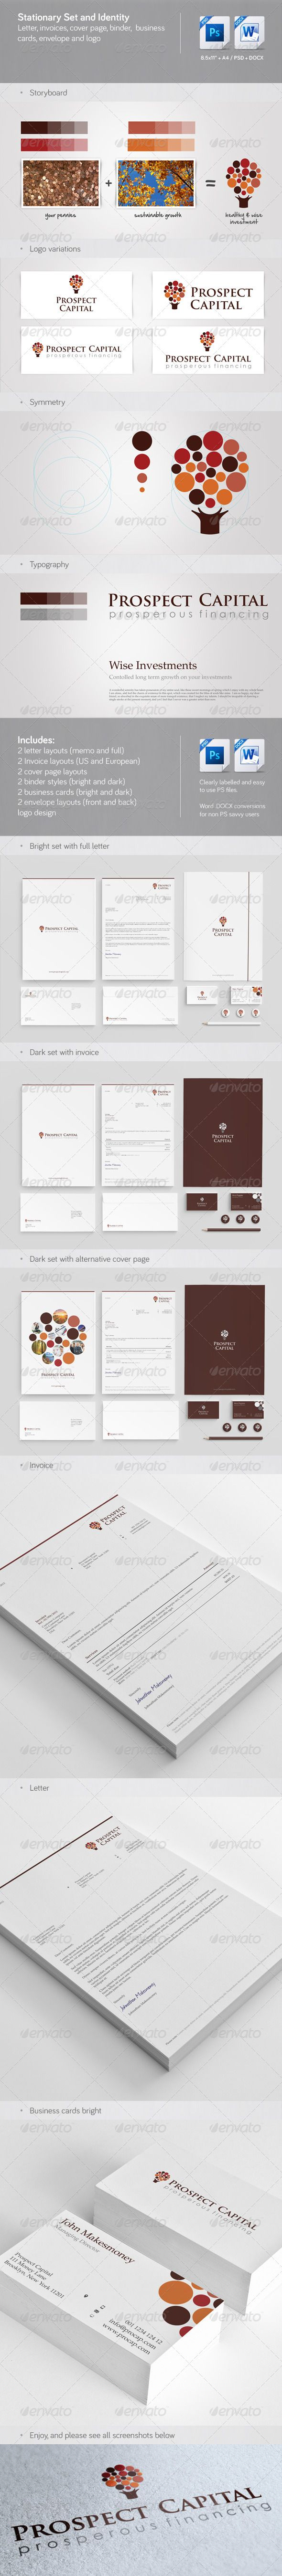 Corporate Stationery Invoice And Identity Corporate Stationery Corporate Stationary Business Card Design